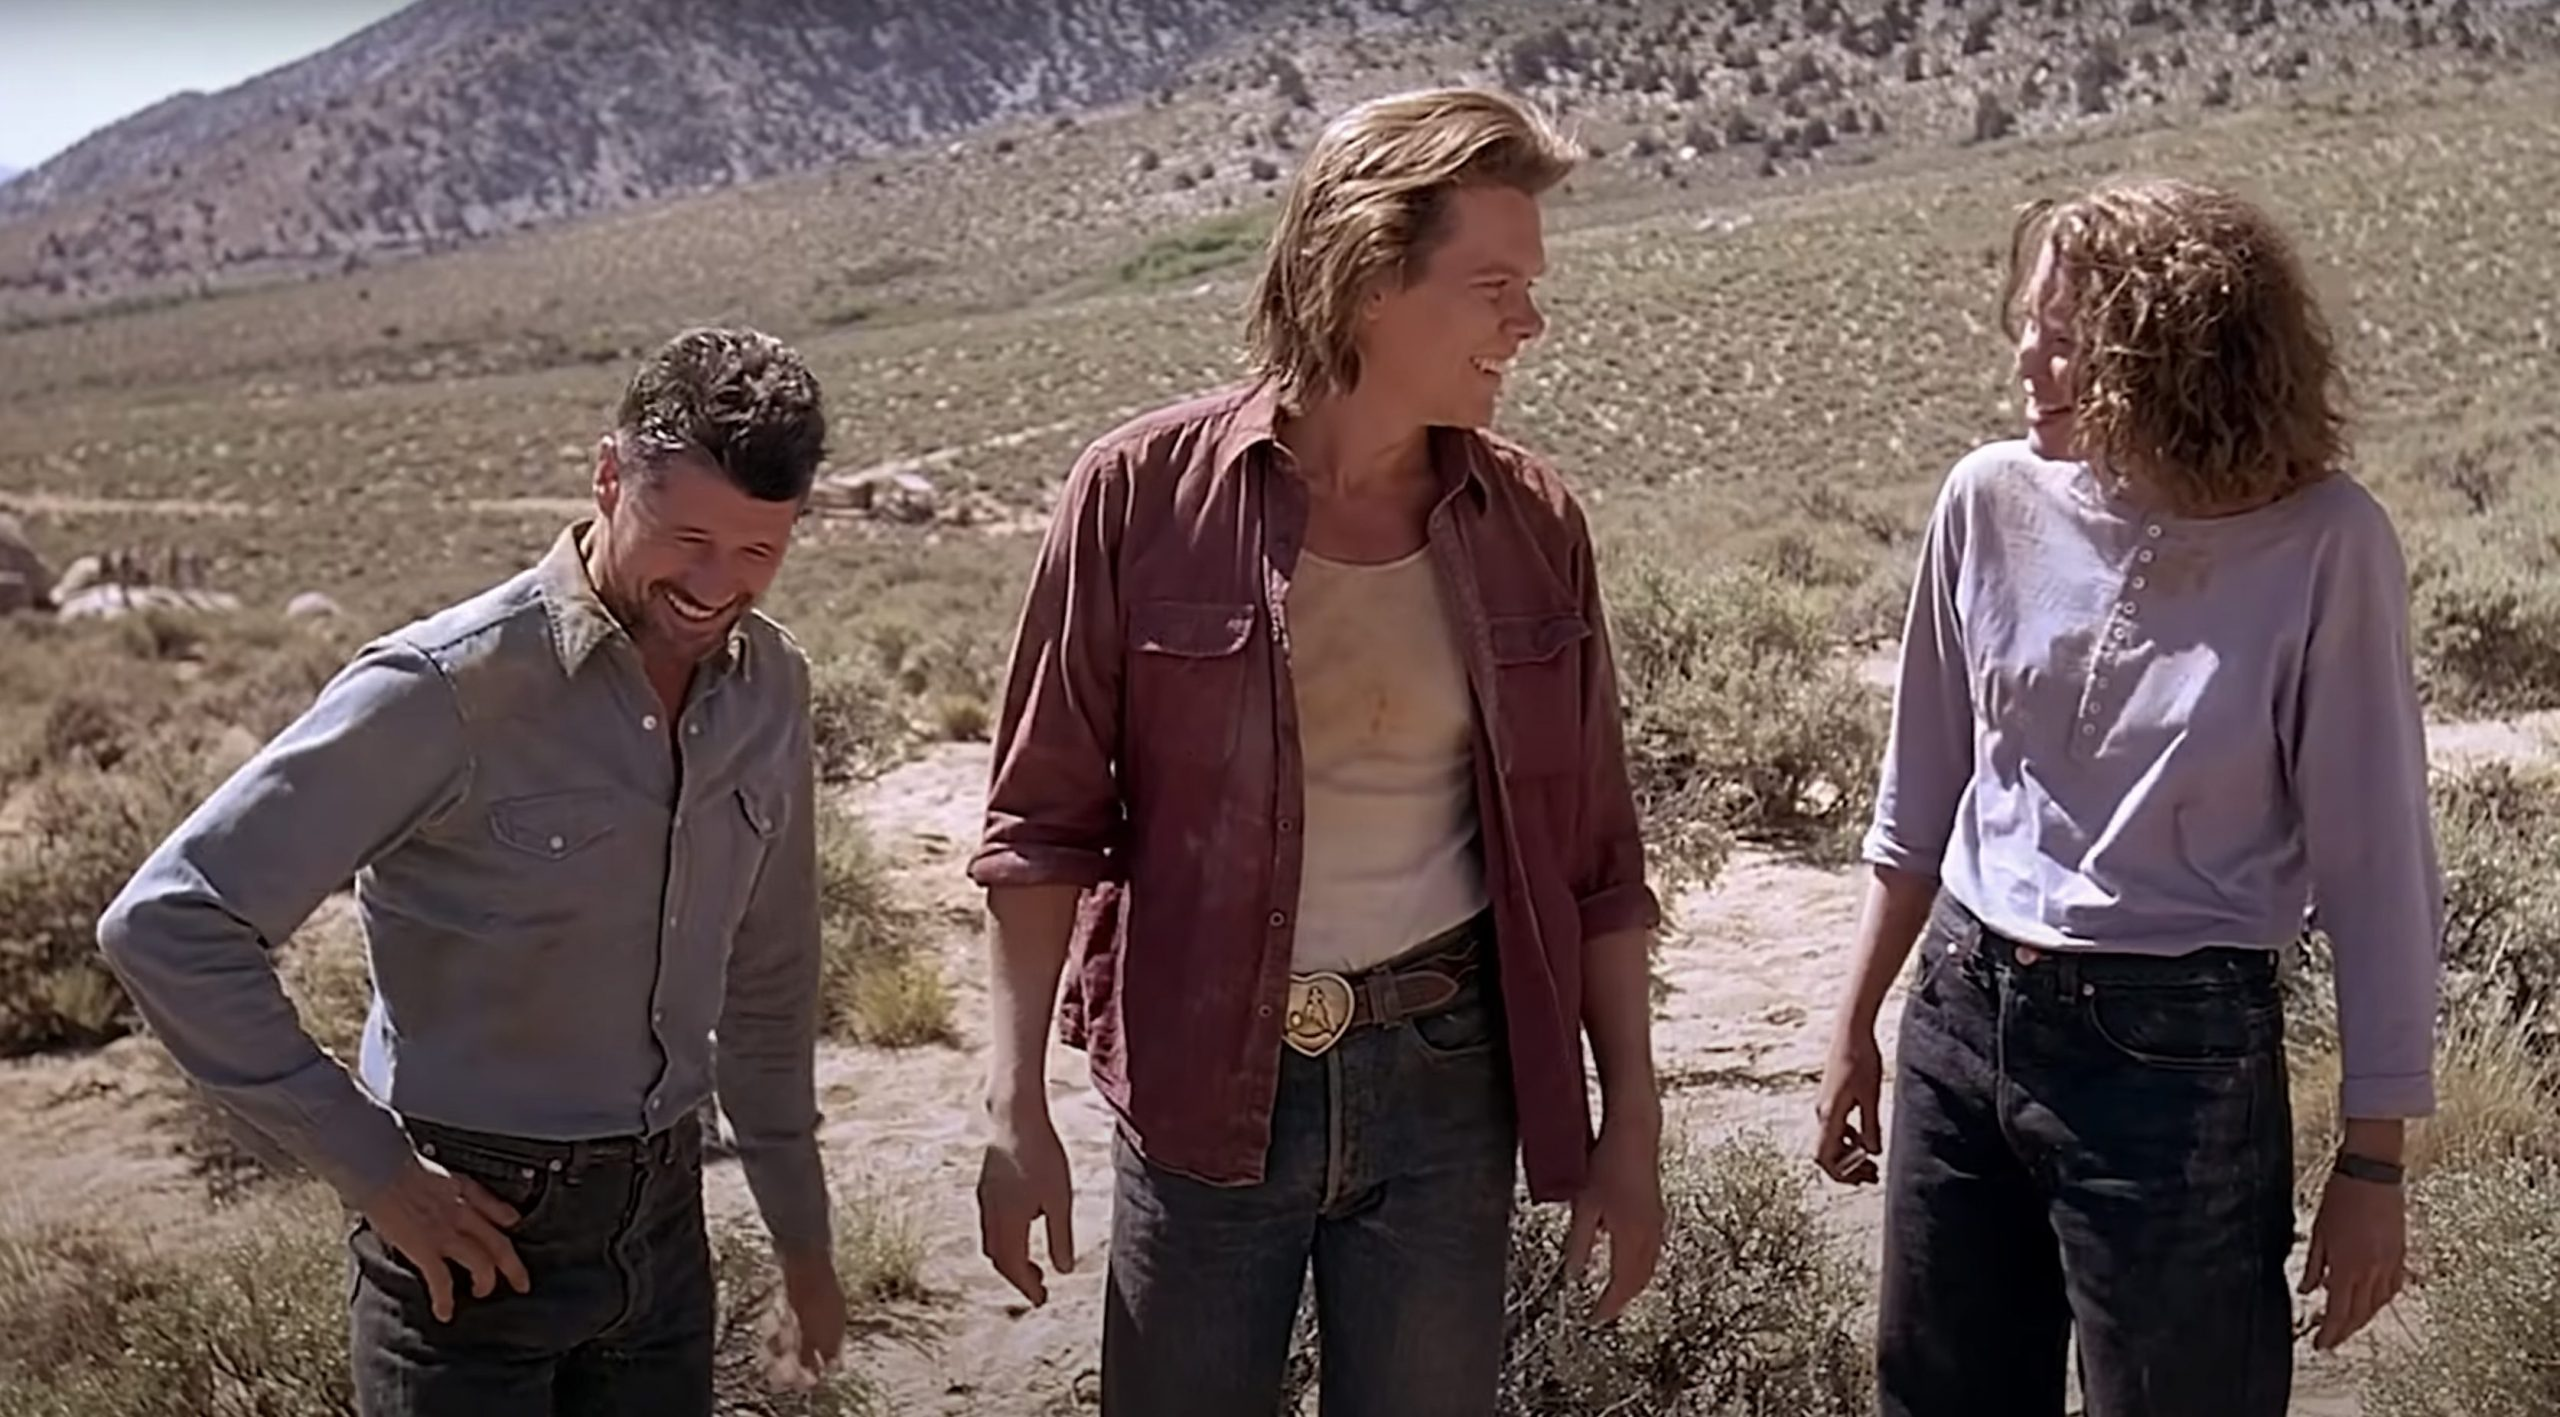 Revisit The Making Of Tremors In This Documentary